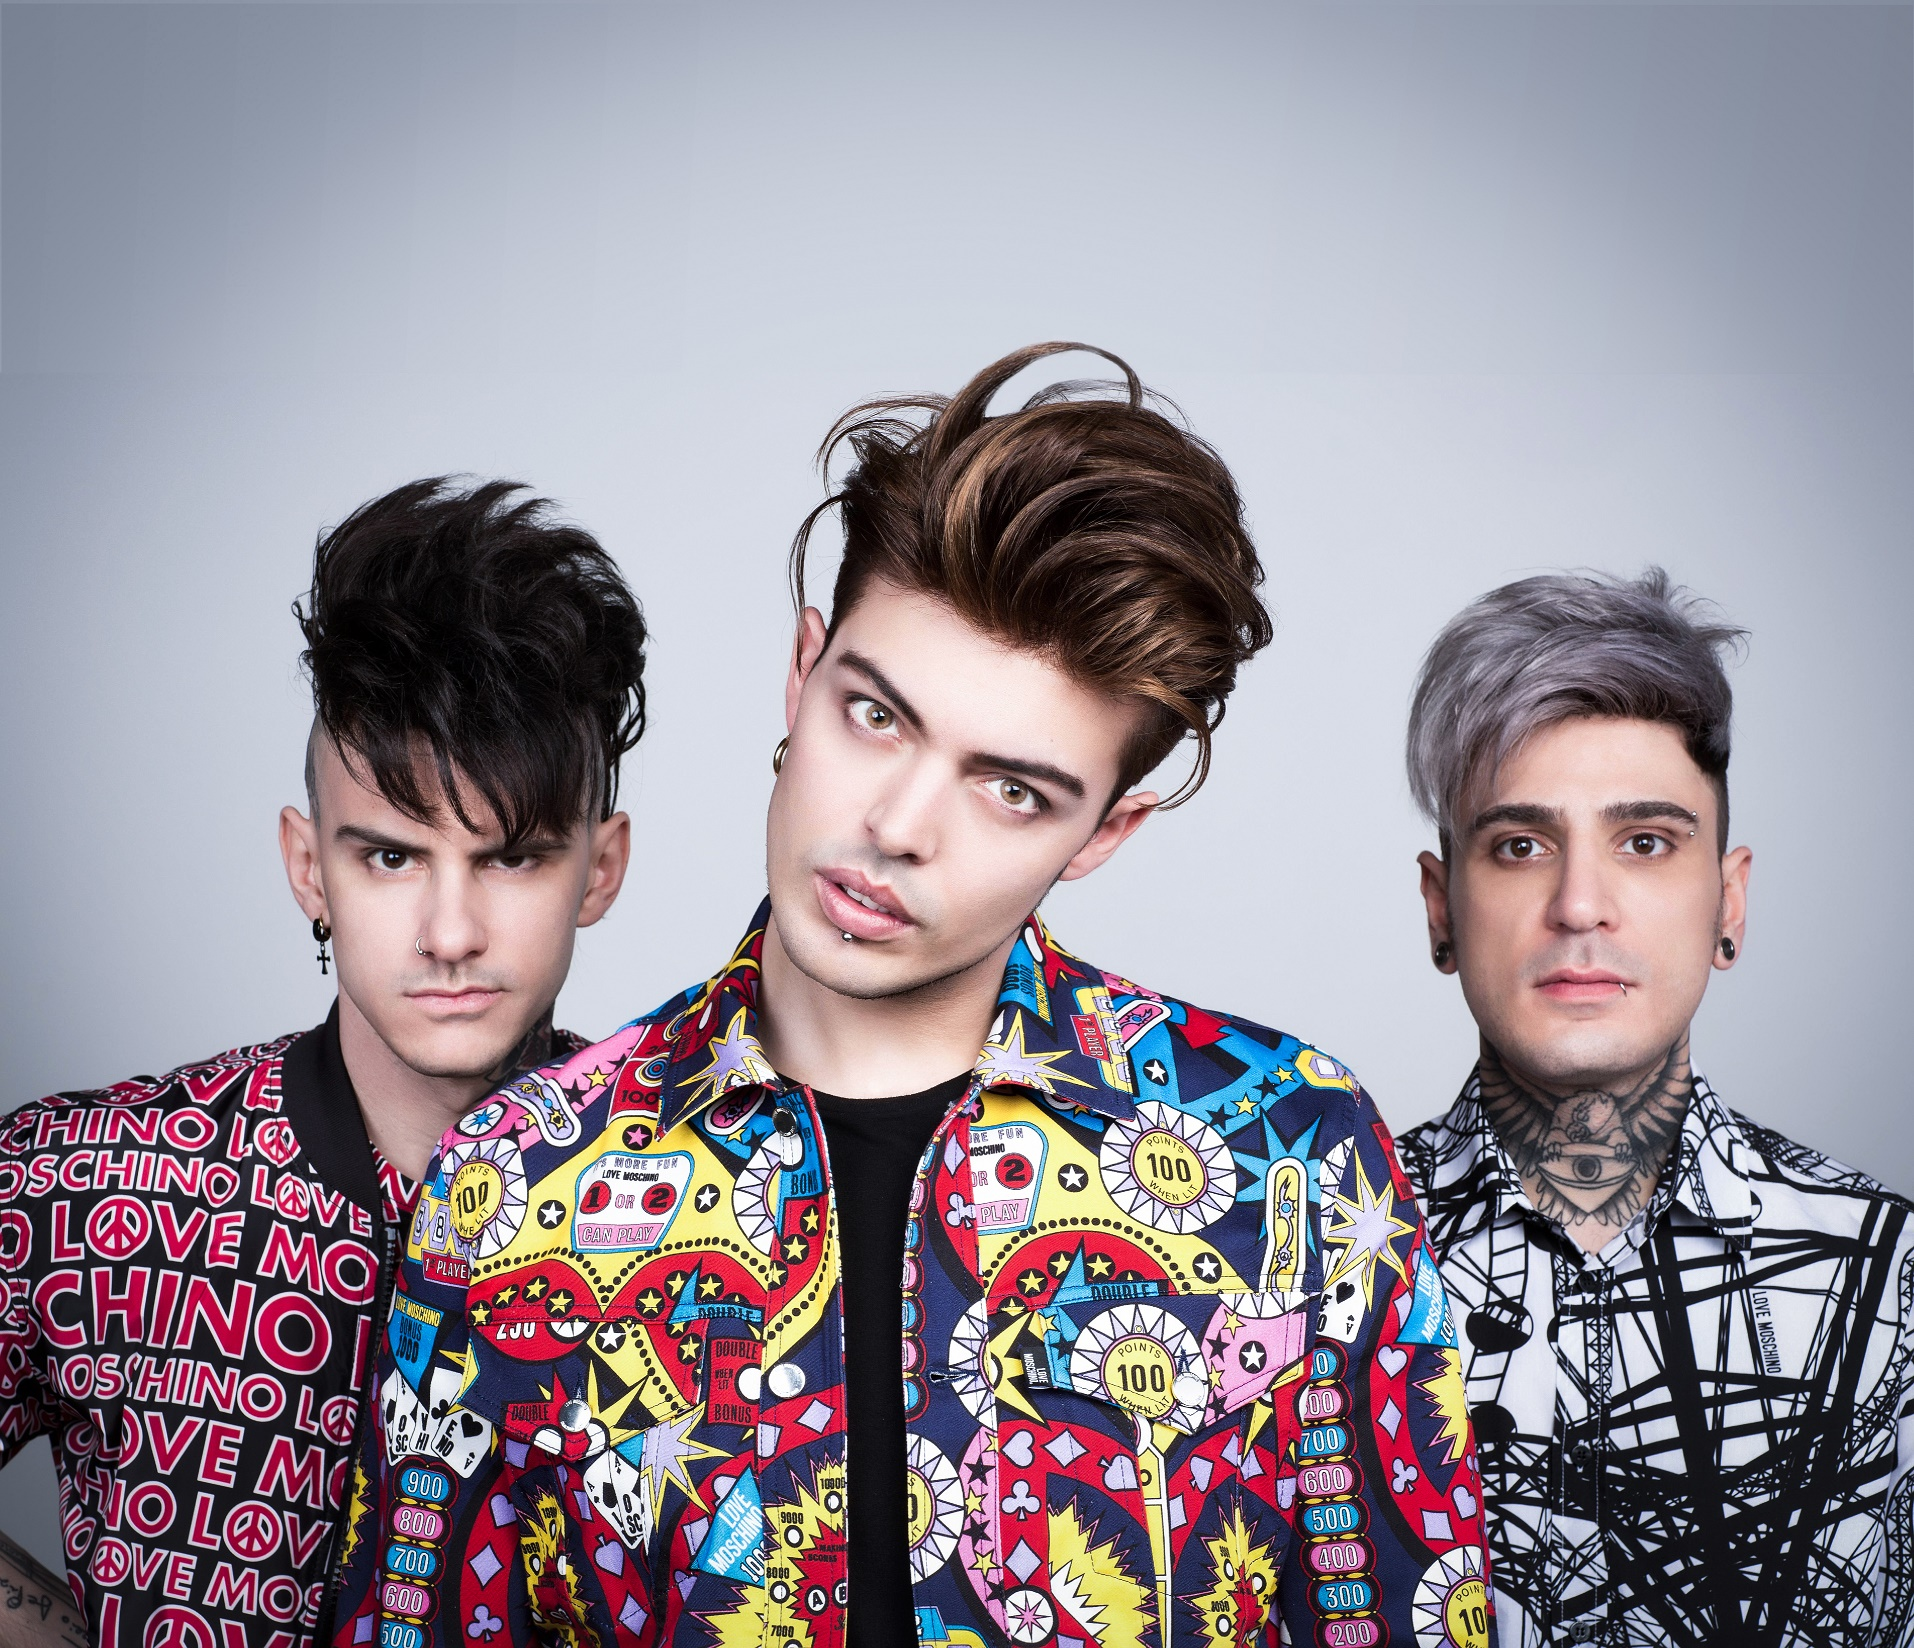 In foto, la band The Kolors. A Sanremo canteranno per la prima volta in italiano col brano Frida